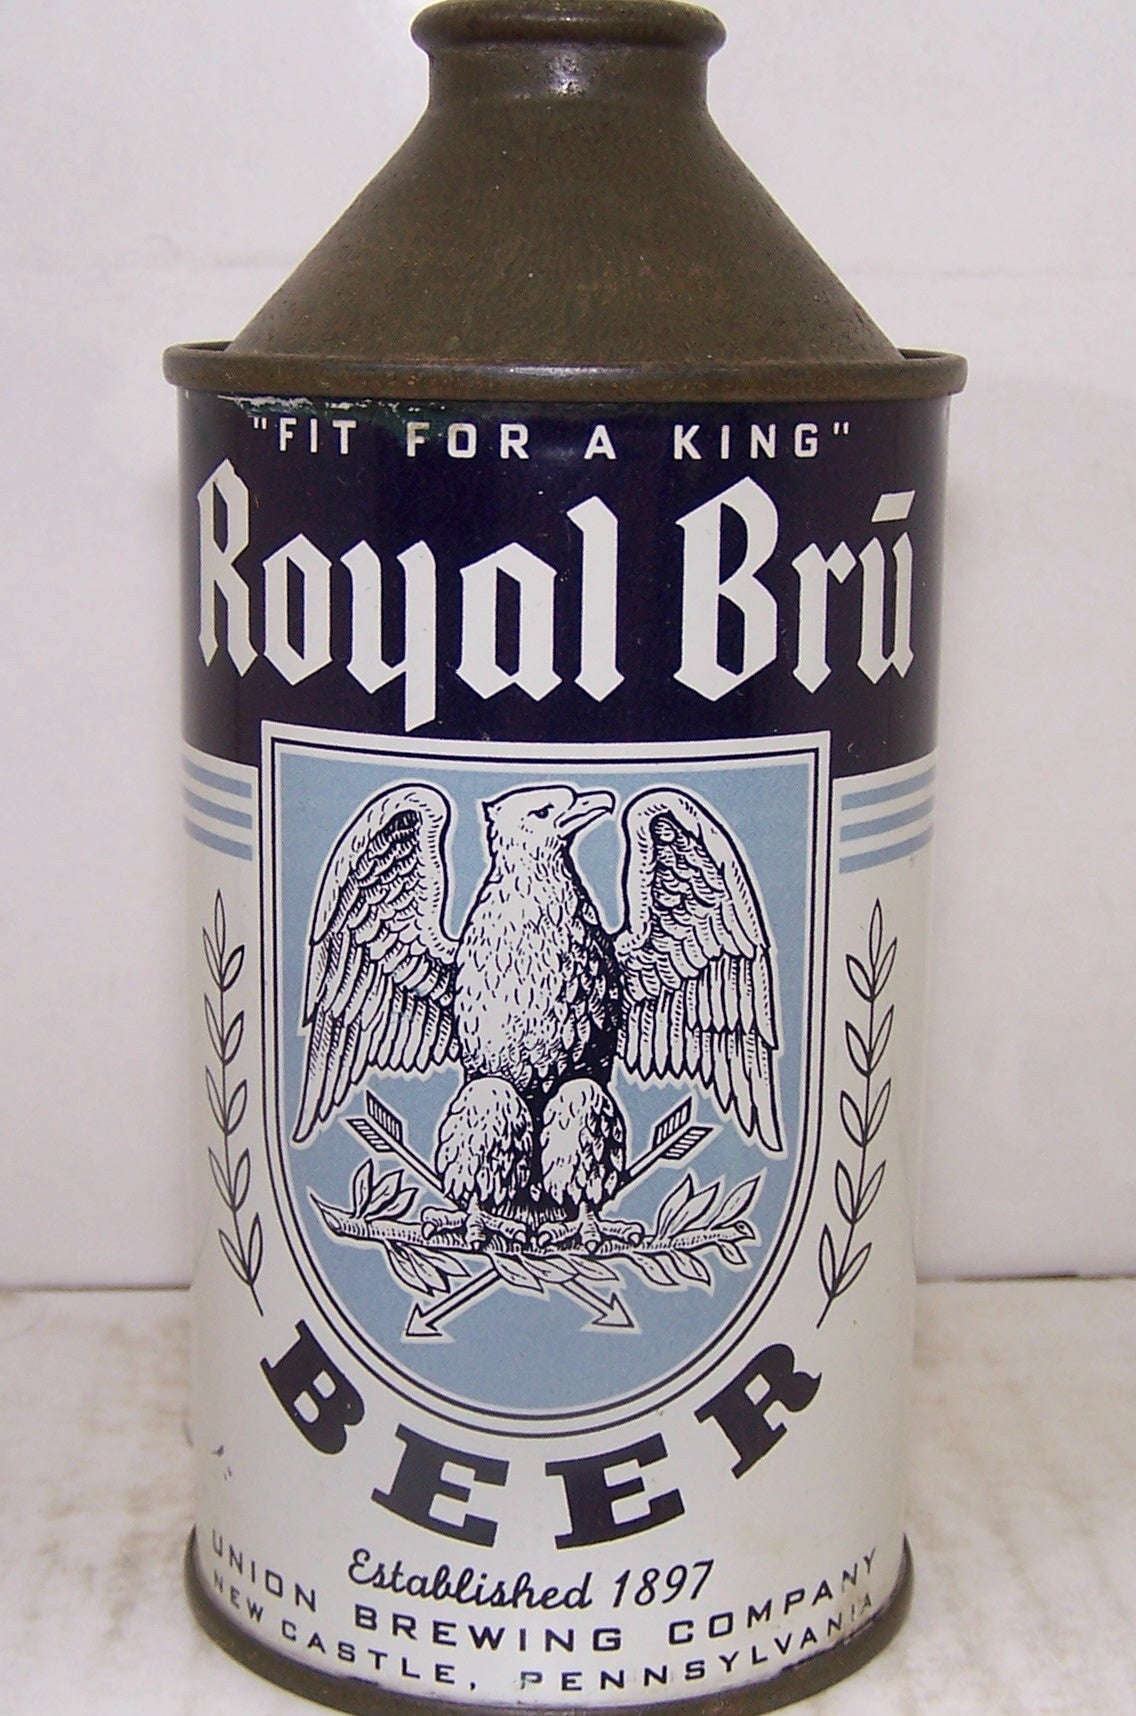 Royal Bru Beer High Profile, USBC 182-29, Grade A1+ Sold on 10/10/15